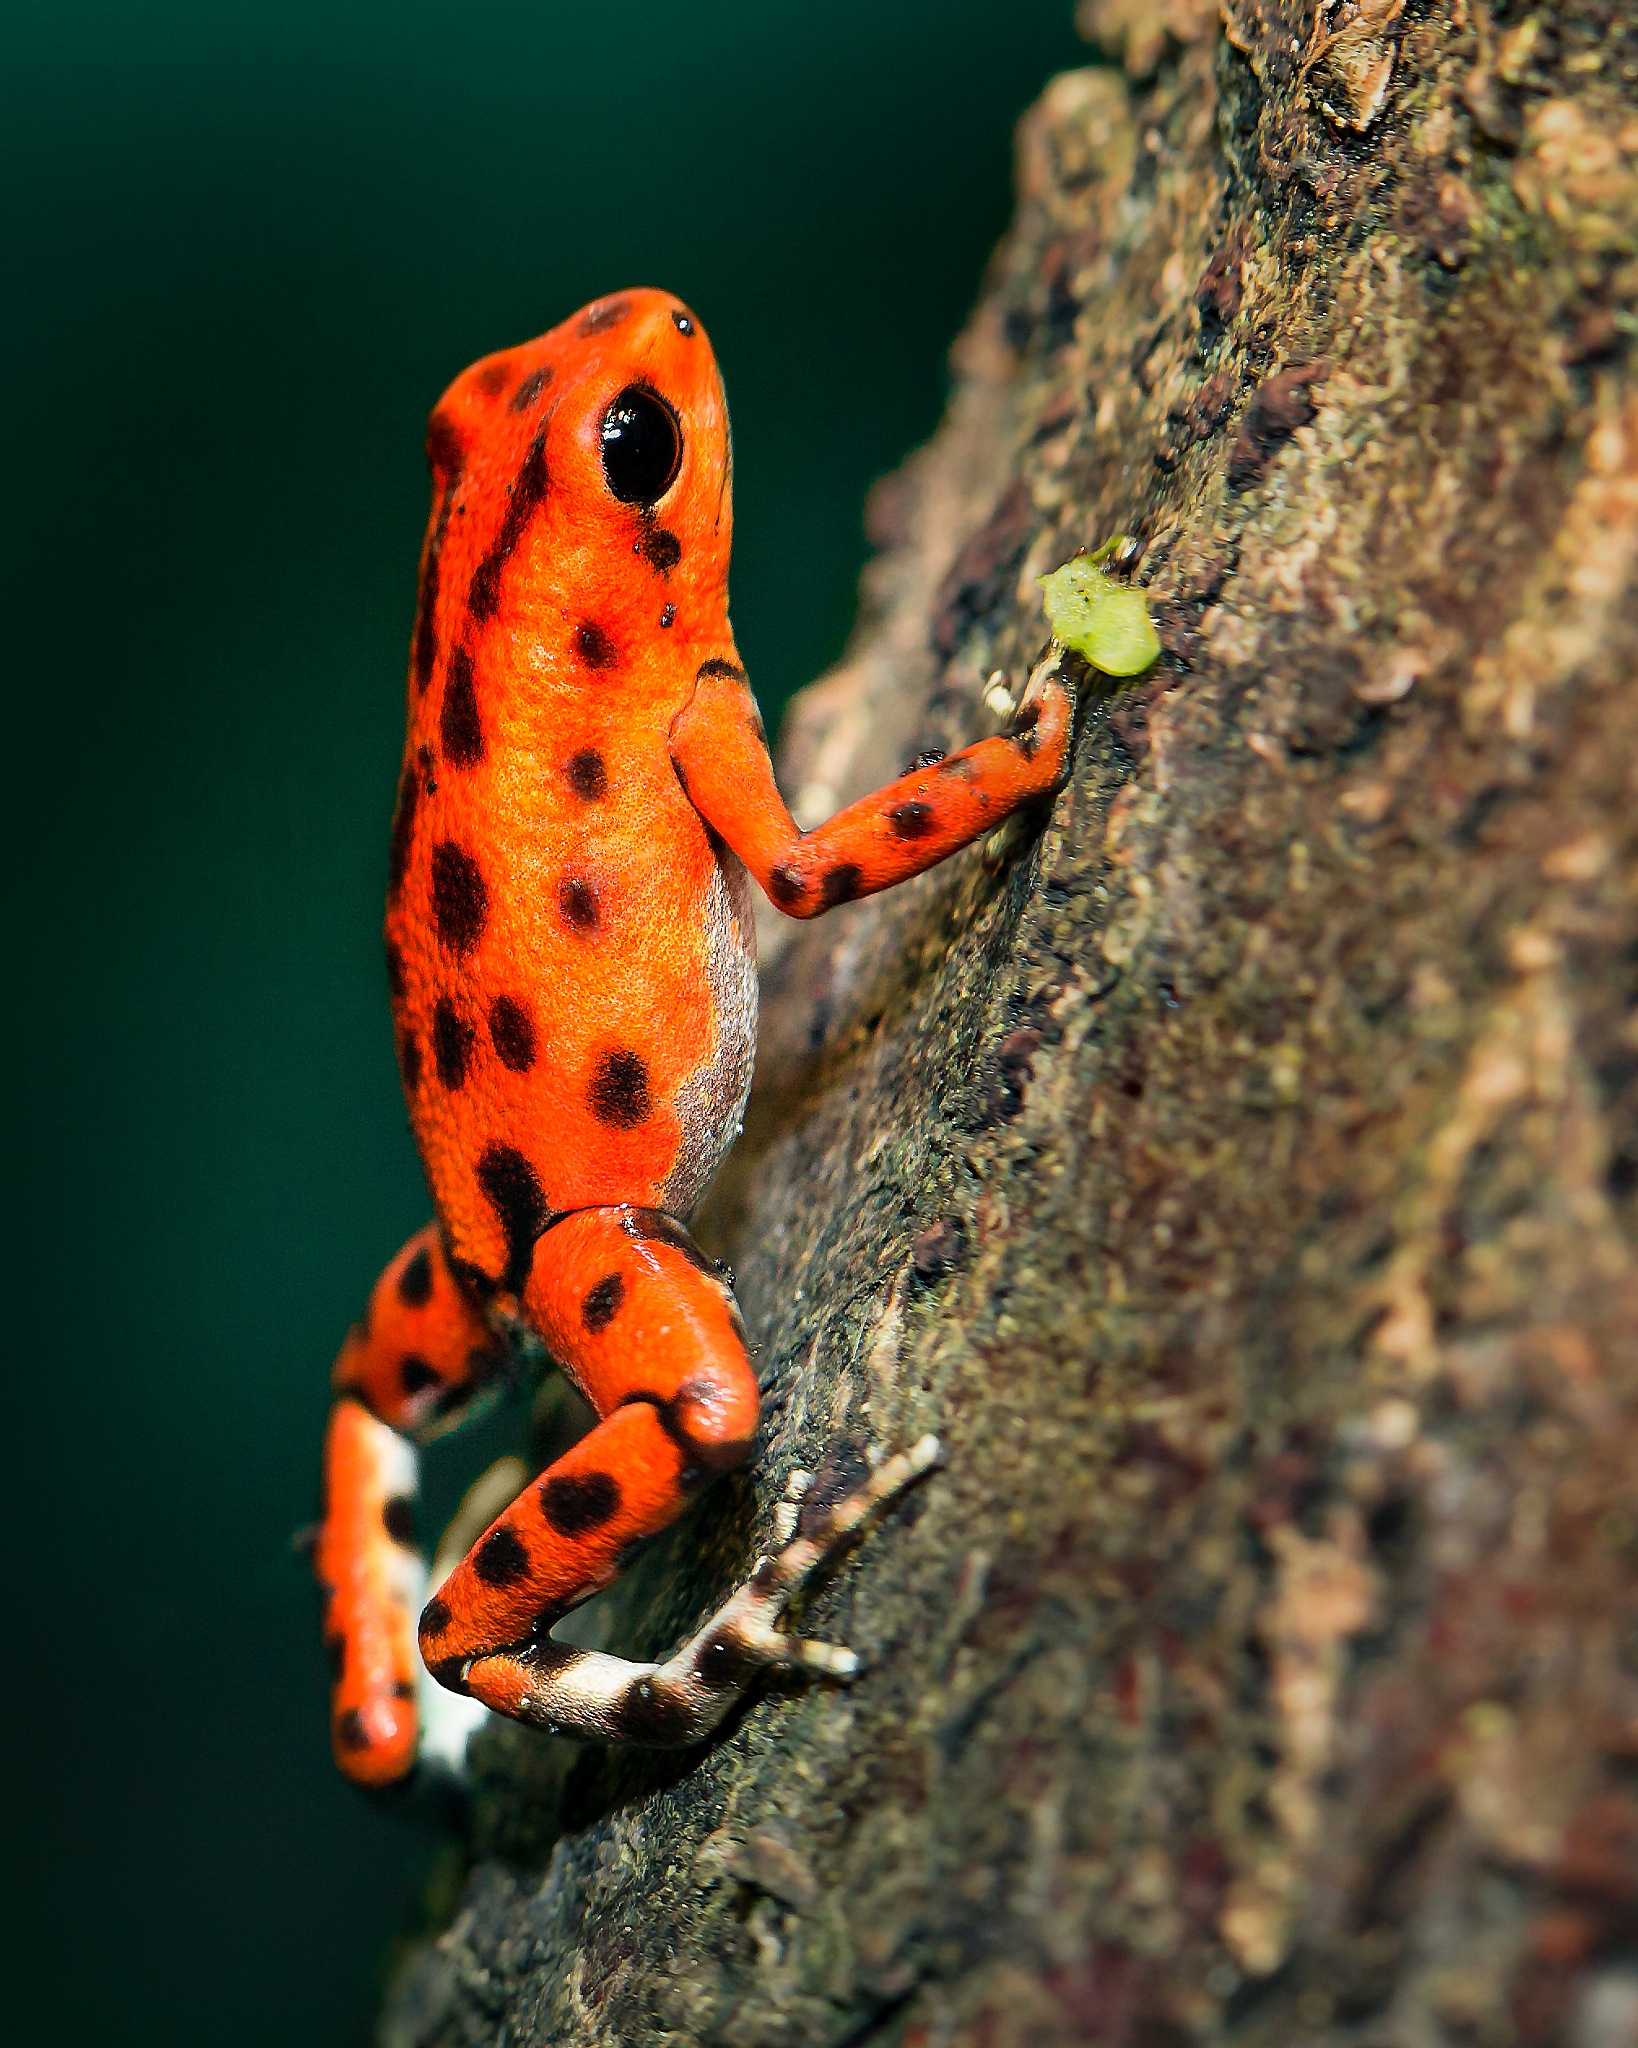 Orange Strawberry frog by Thierry Fillieul